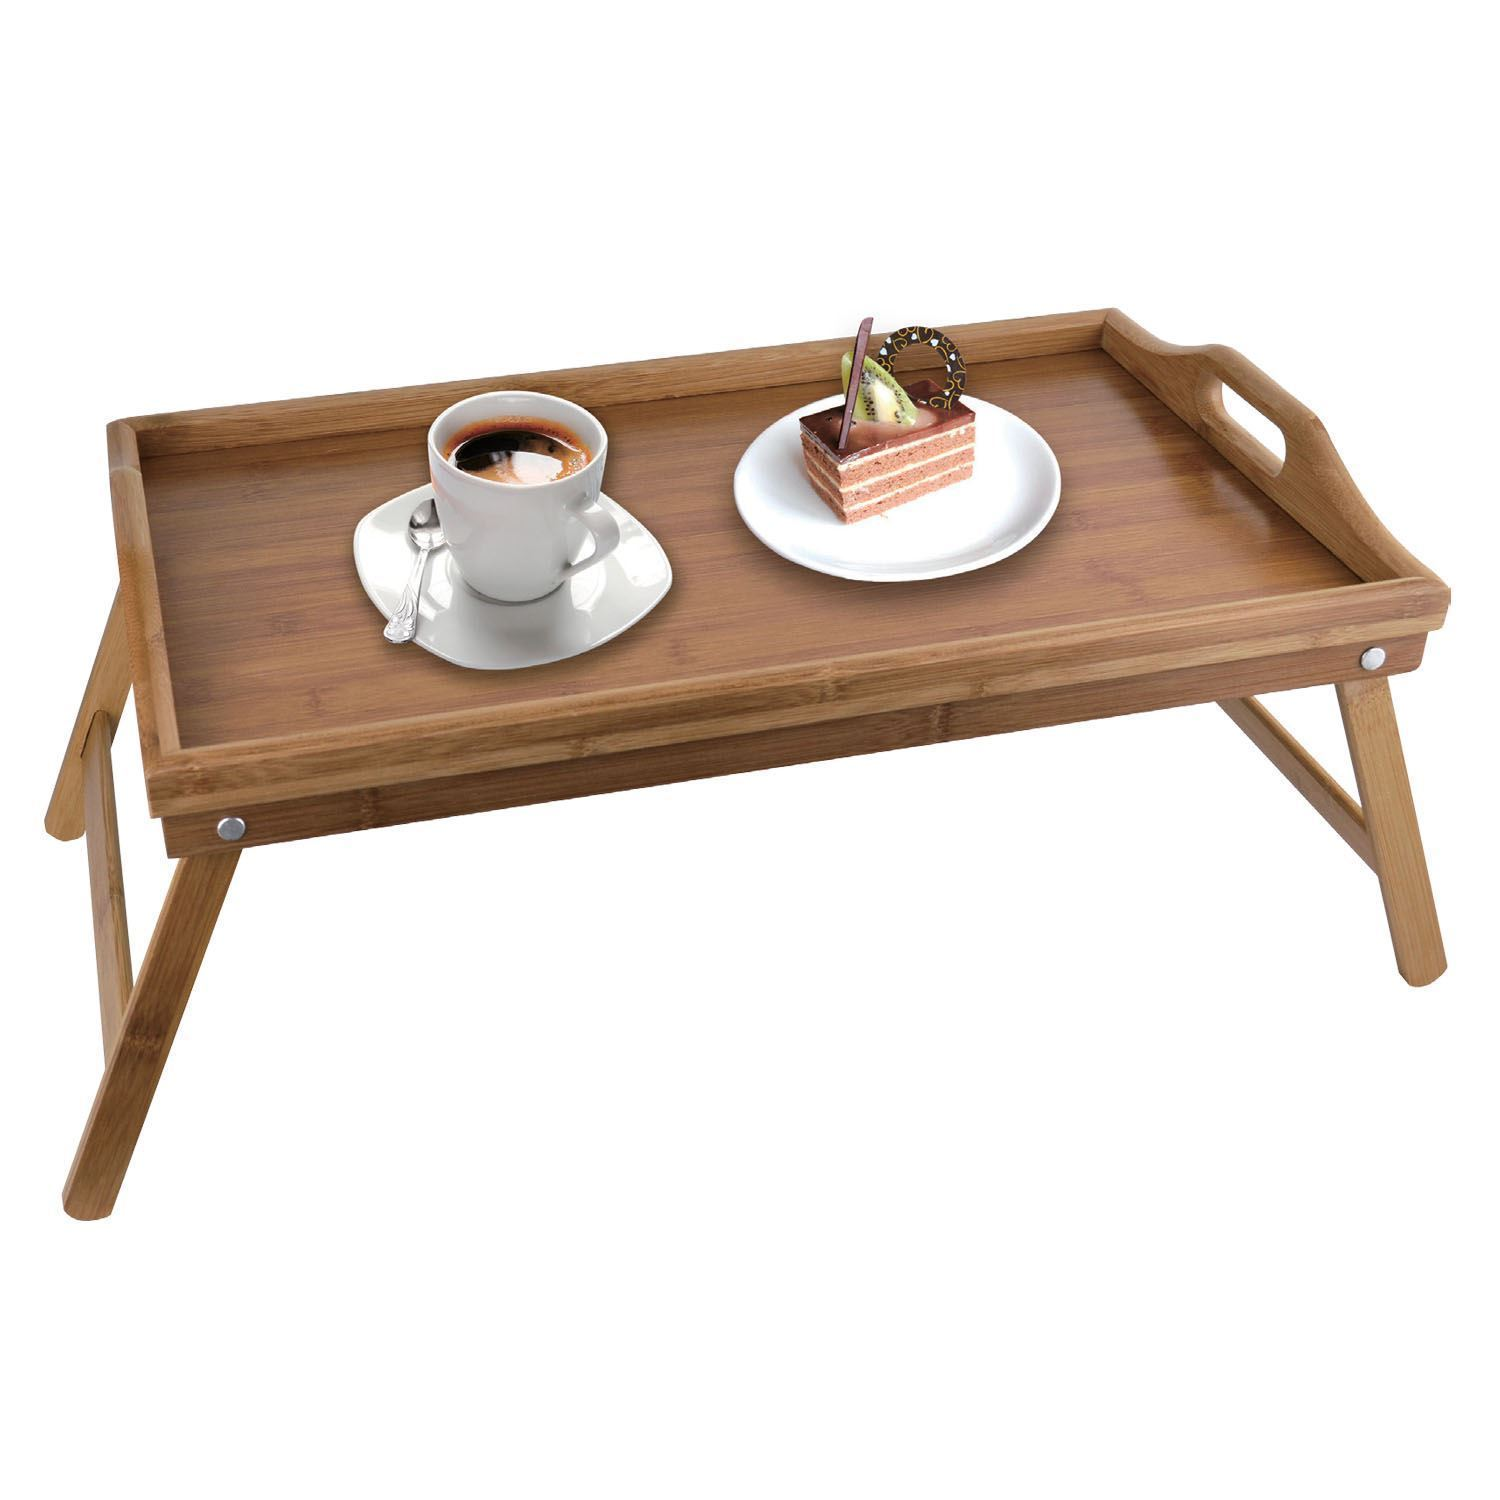 folding bamboo wooden breakfast serving lap tray over bed table with legs ebay. Black Bedroom Furniture Sets. Home Design Ideas